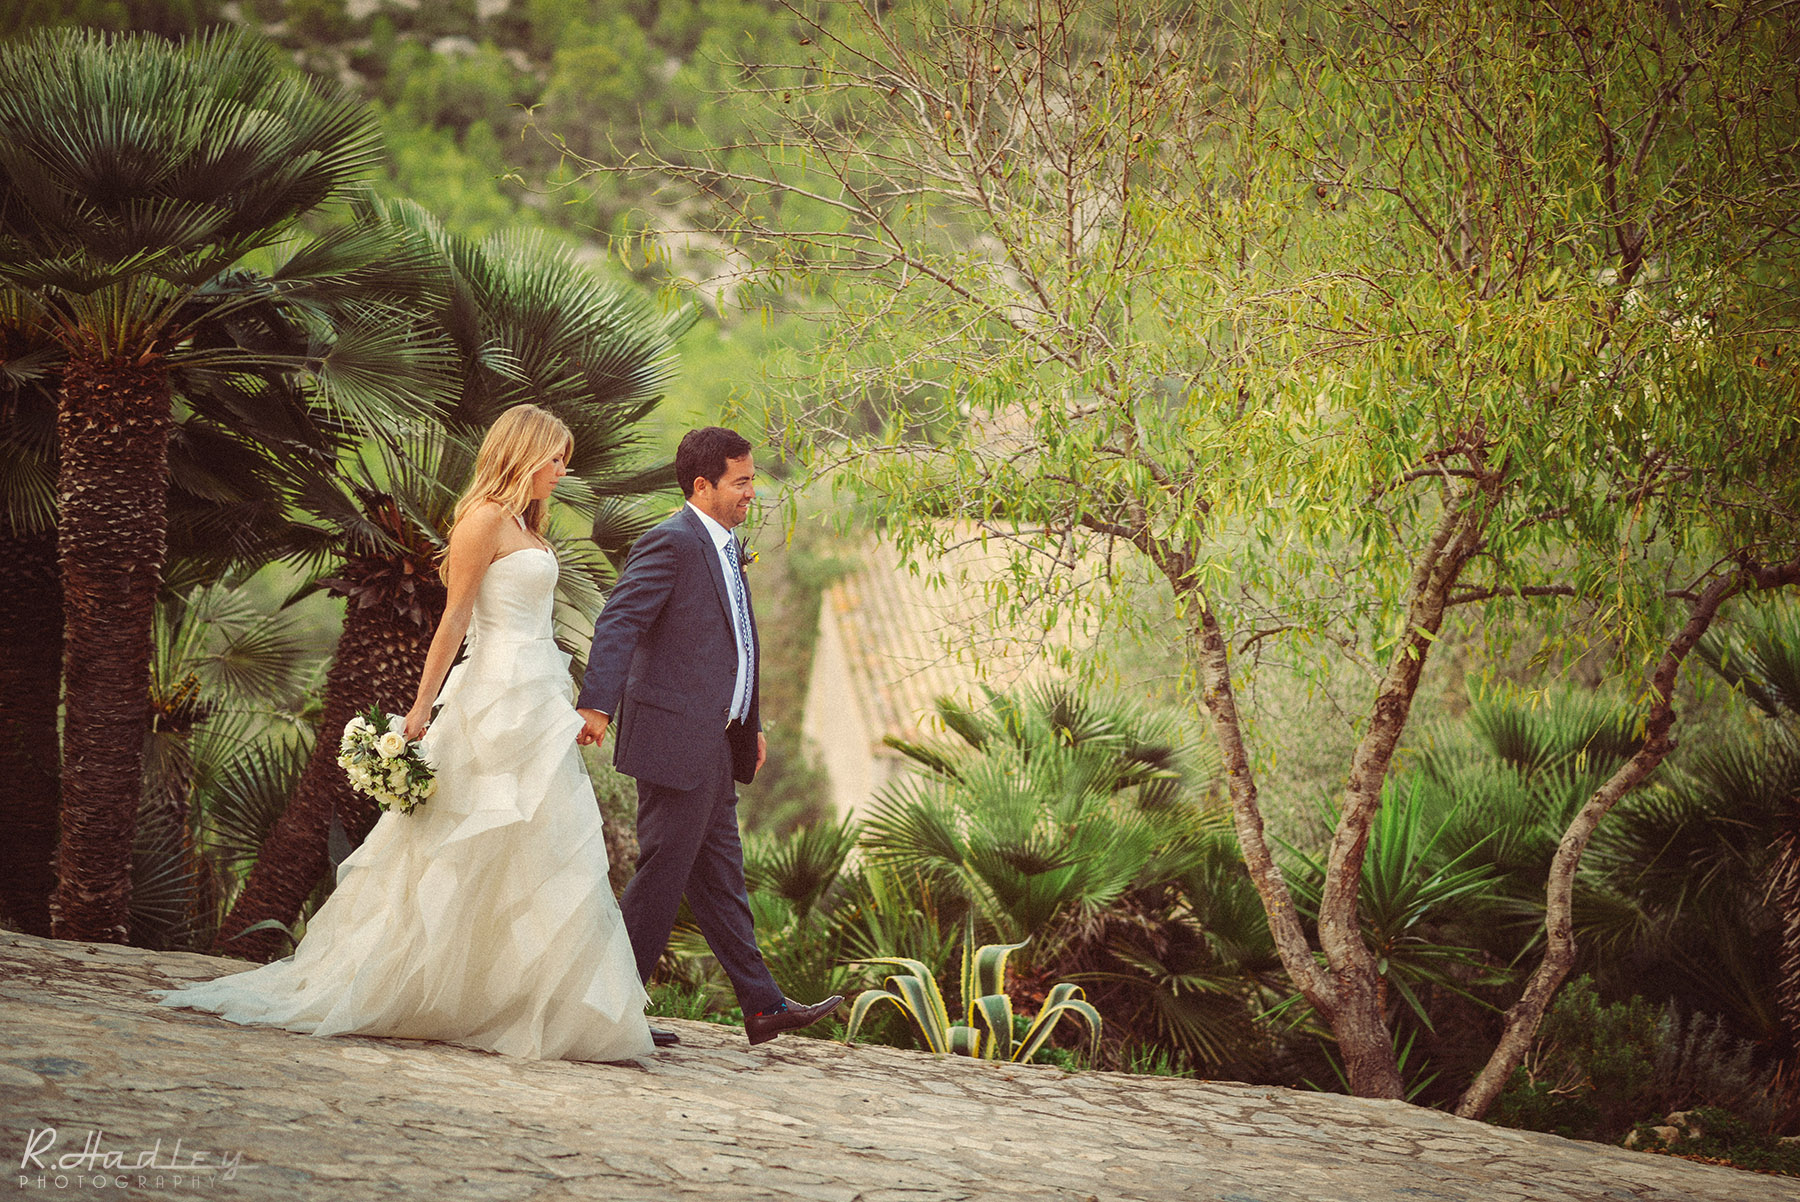 An amazing wedding at Casa Felix, Sitges, near Barcelona, Spain